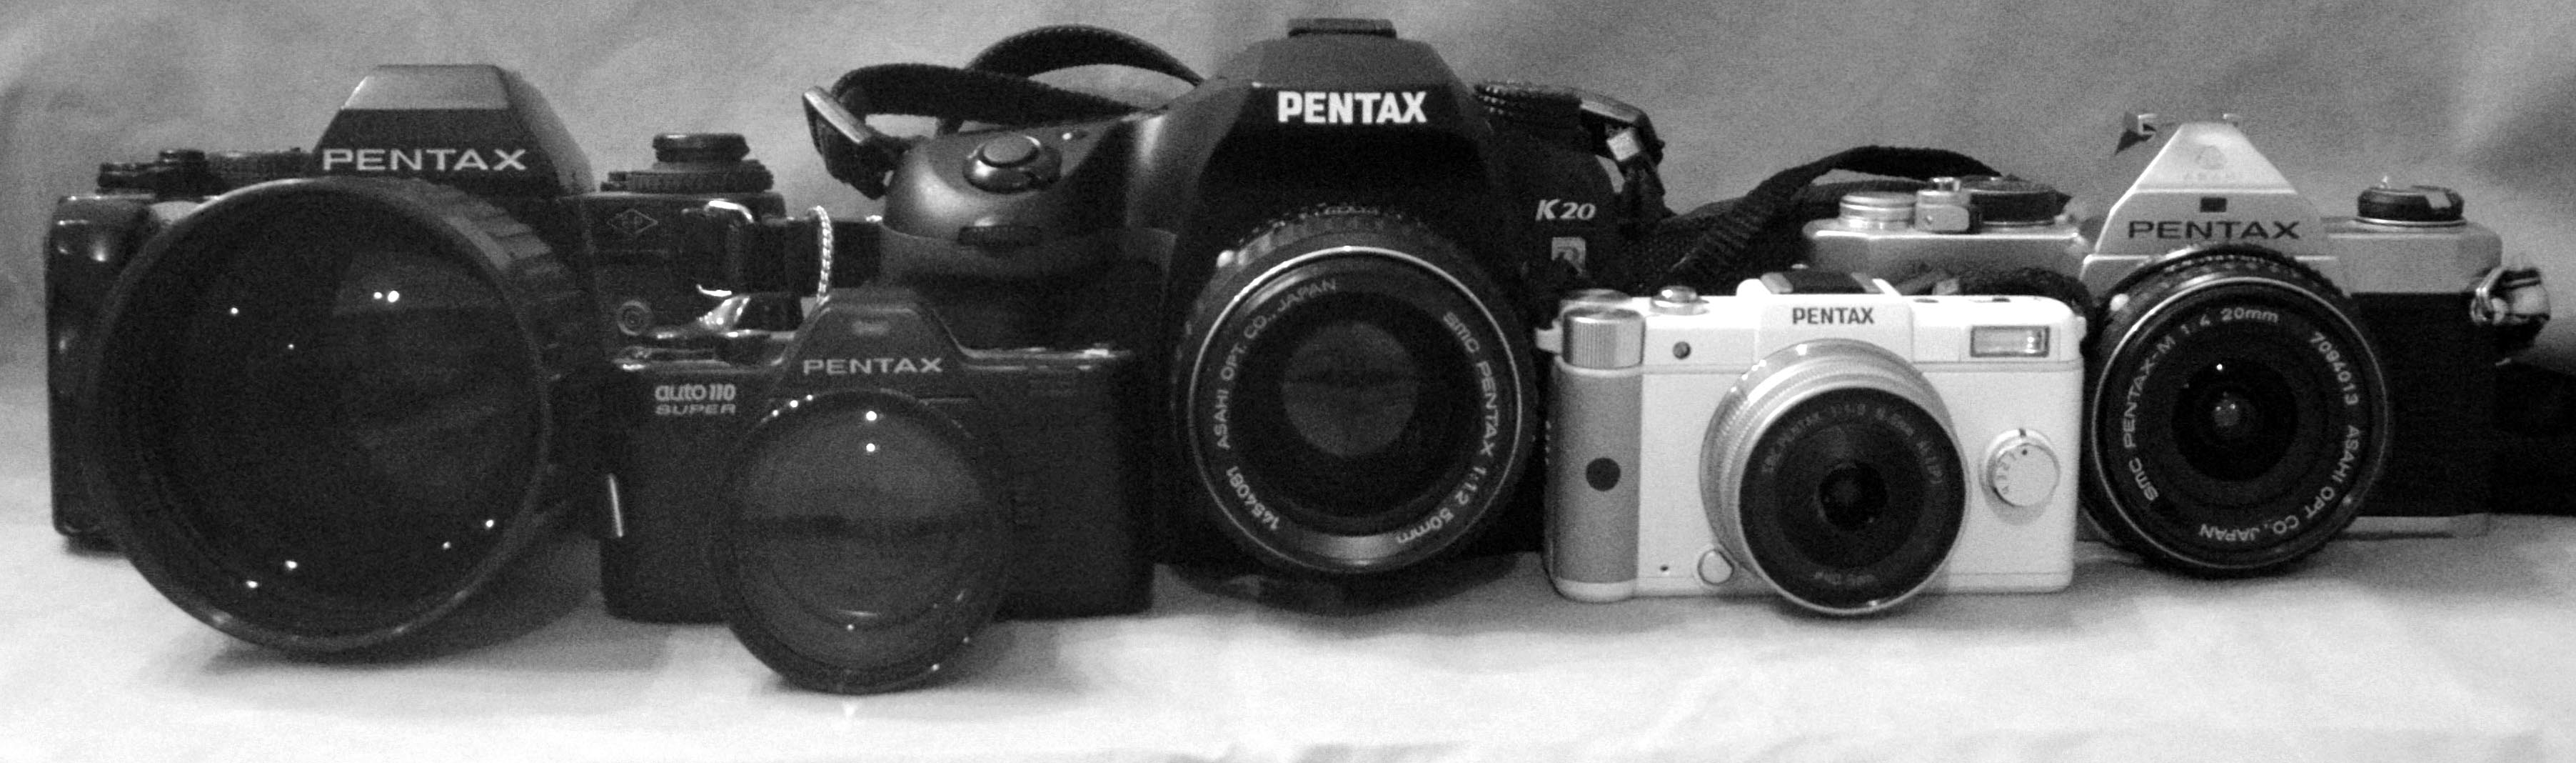 From left: LX w/135 1.8; Auto 110 Super w/70; K20d w/50 1.2; Q w/01; MX w/20 4